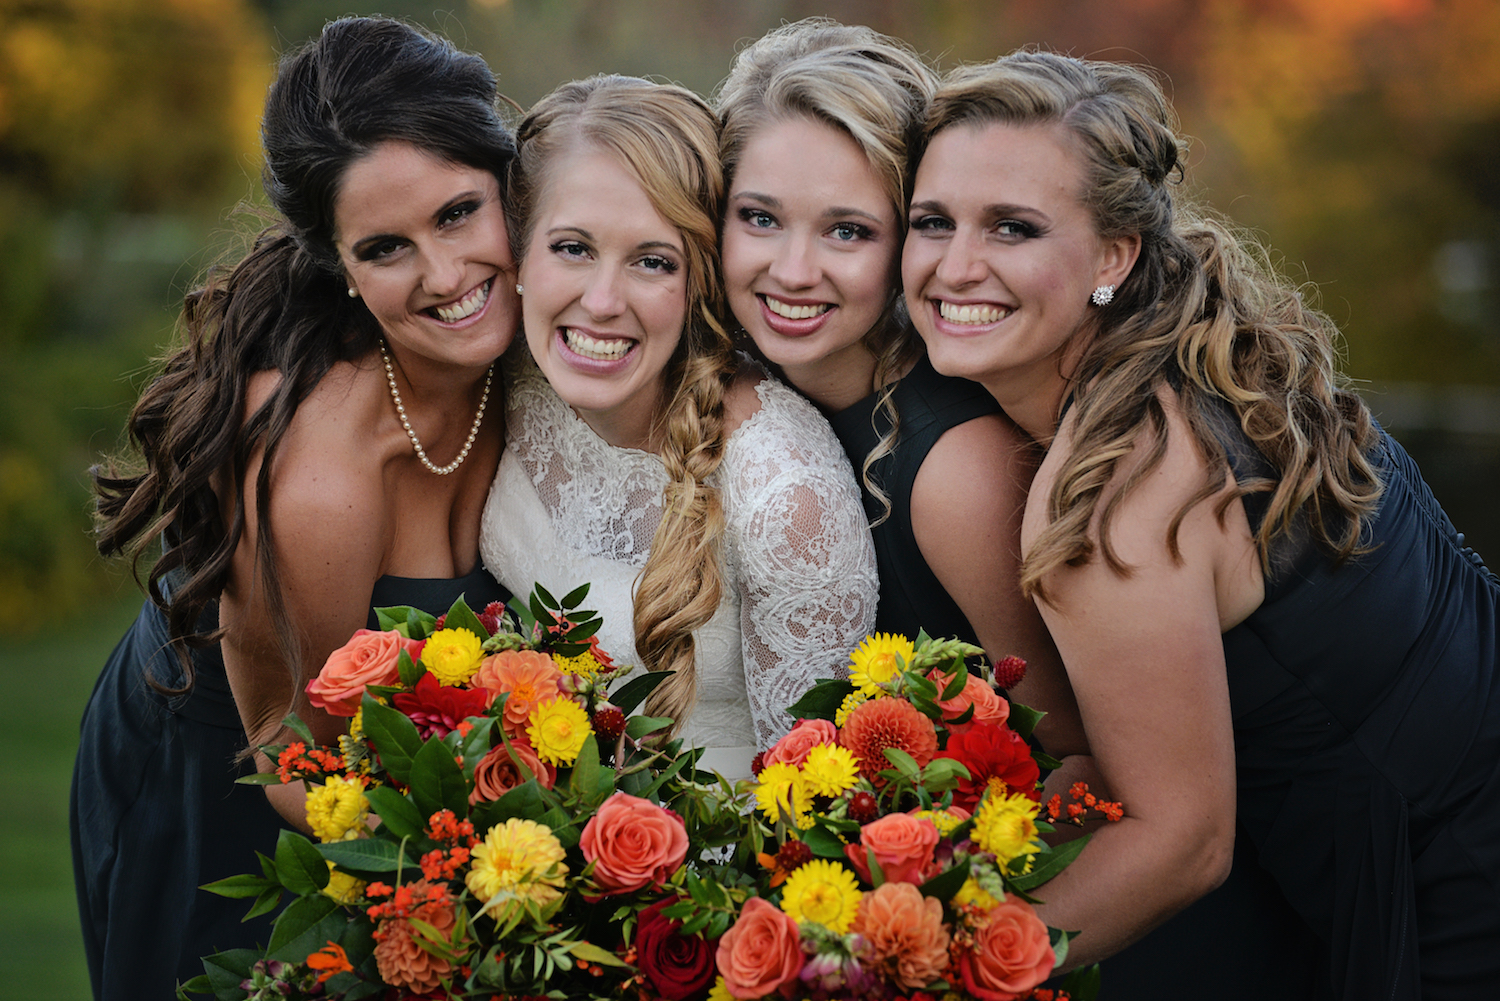 Fall-themed-orange-red-yellow-bridal-bouquets.JPG